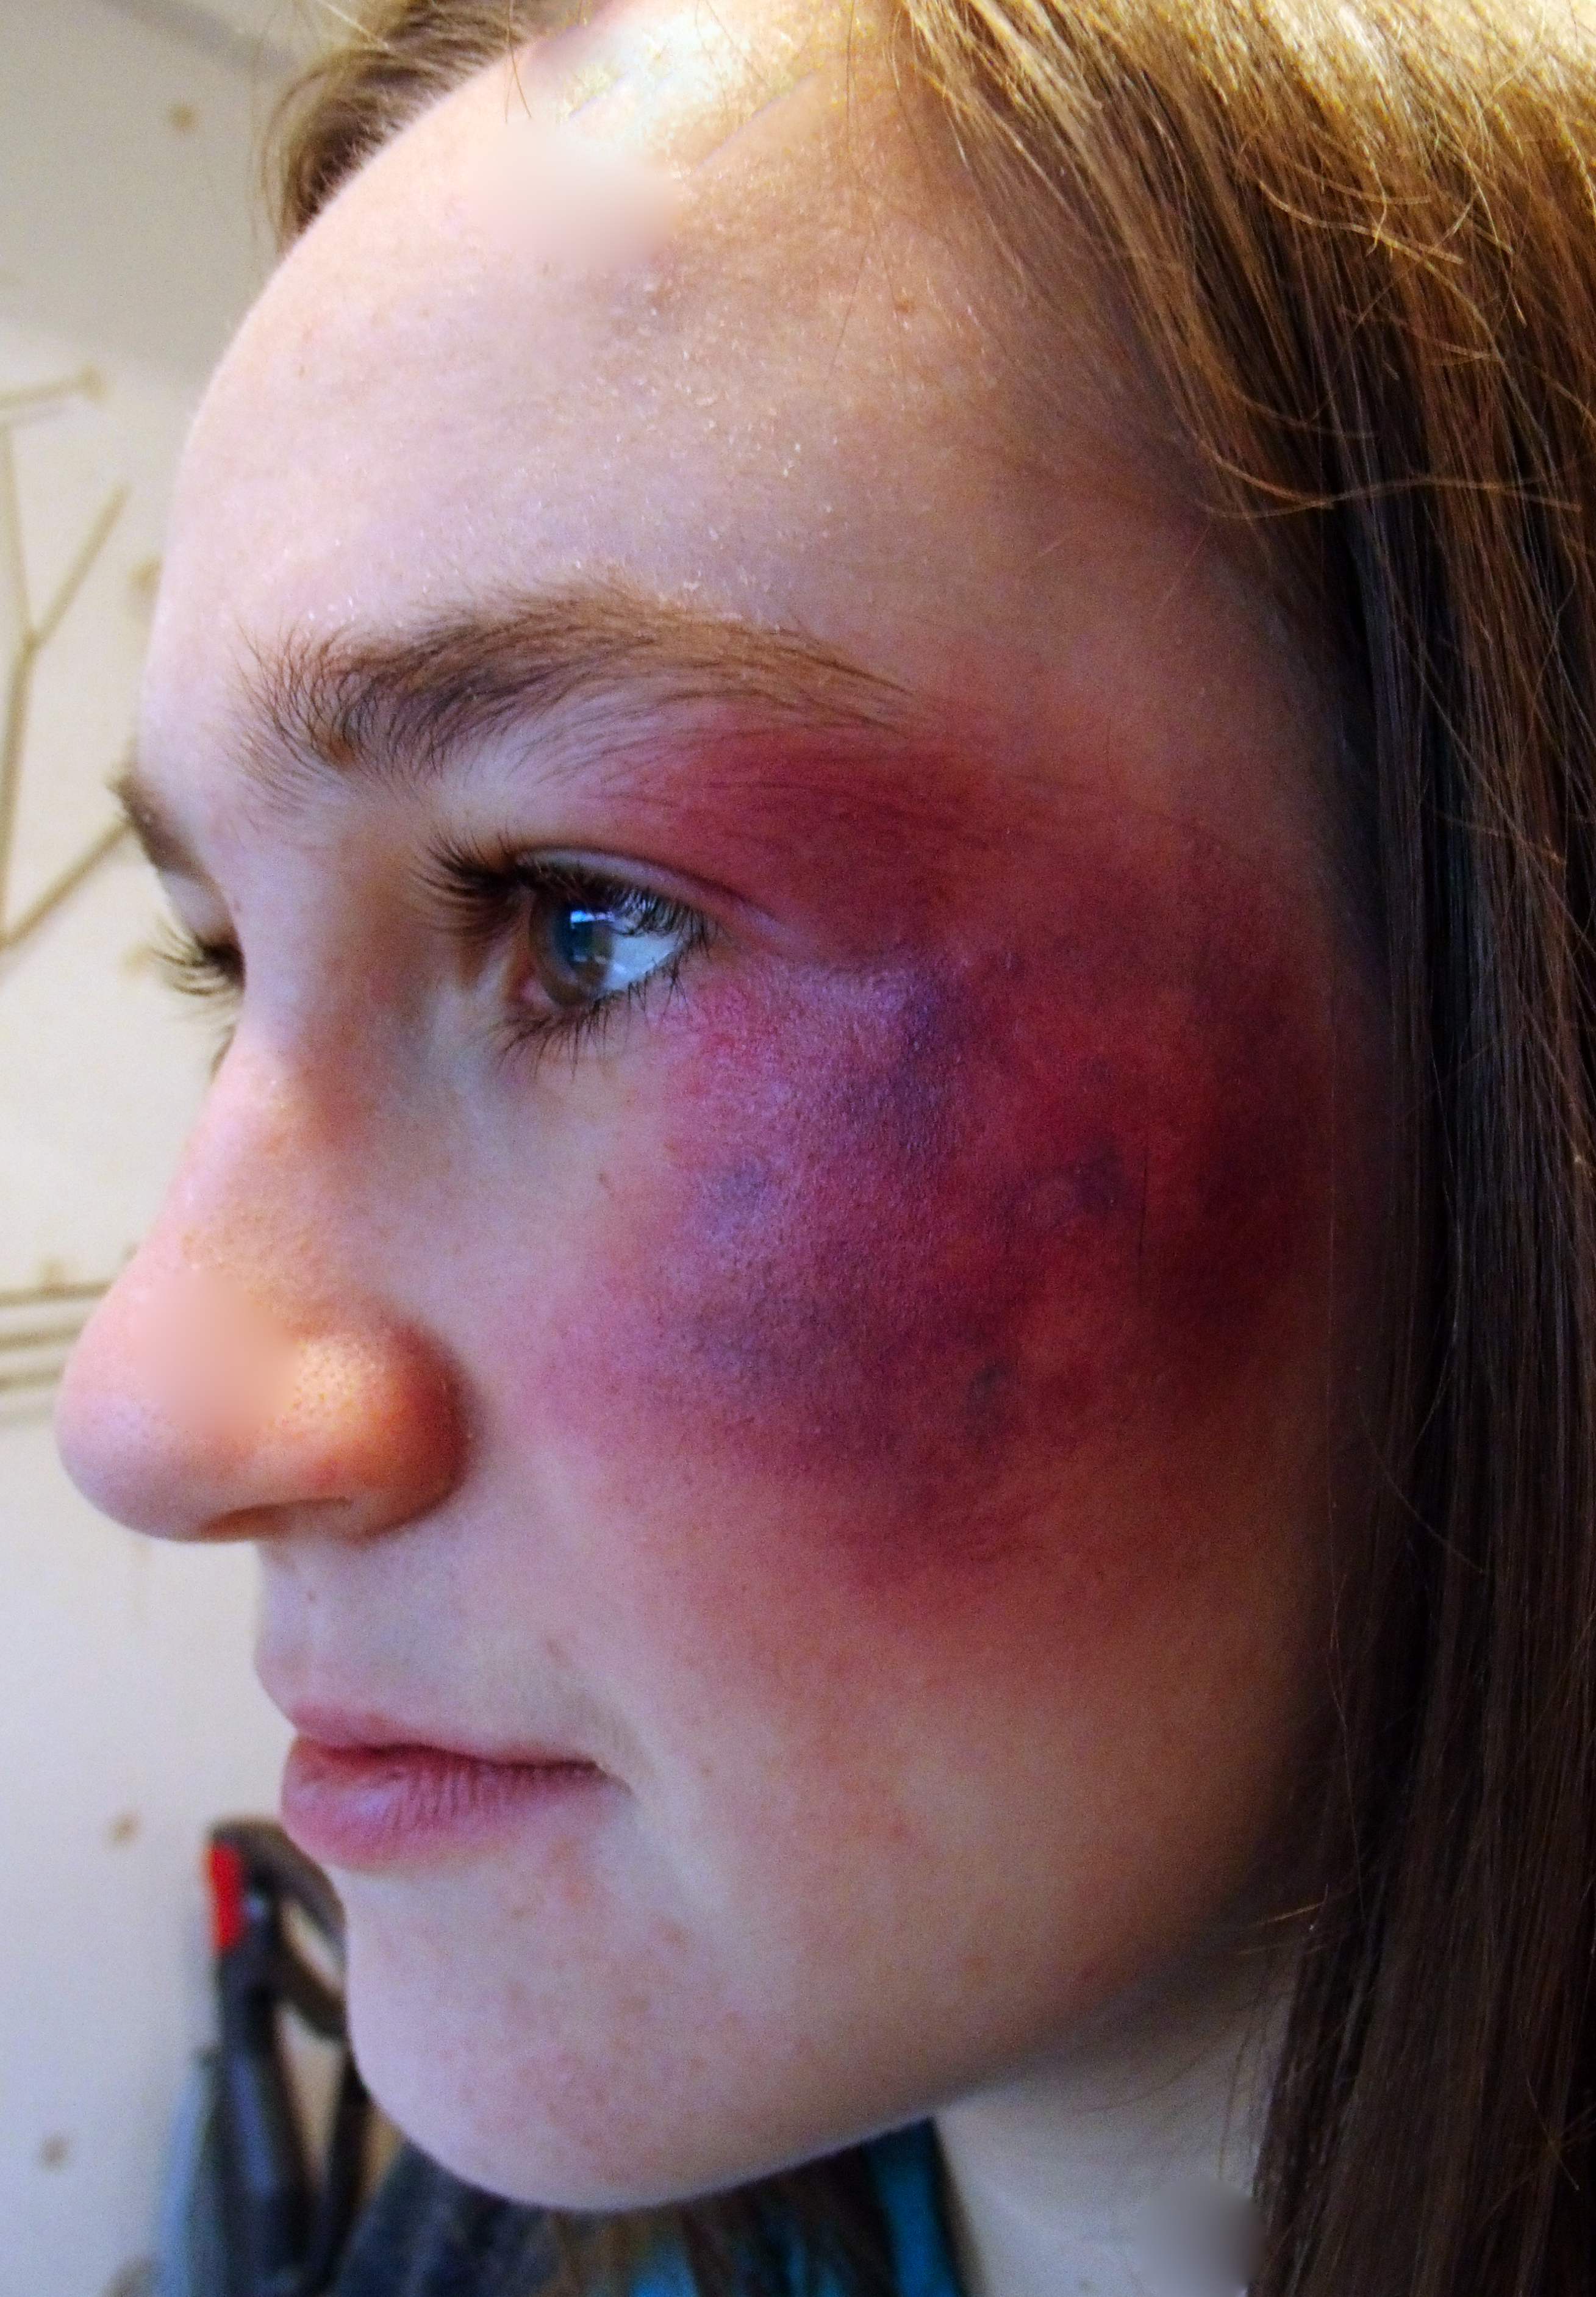 Makeup Ideas bruise makeup : wounds and bruises bruises injuries pinterest faces men pinterest gore ...